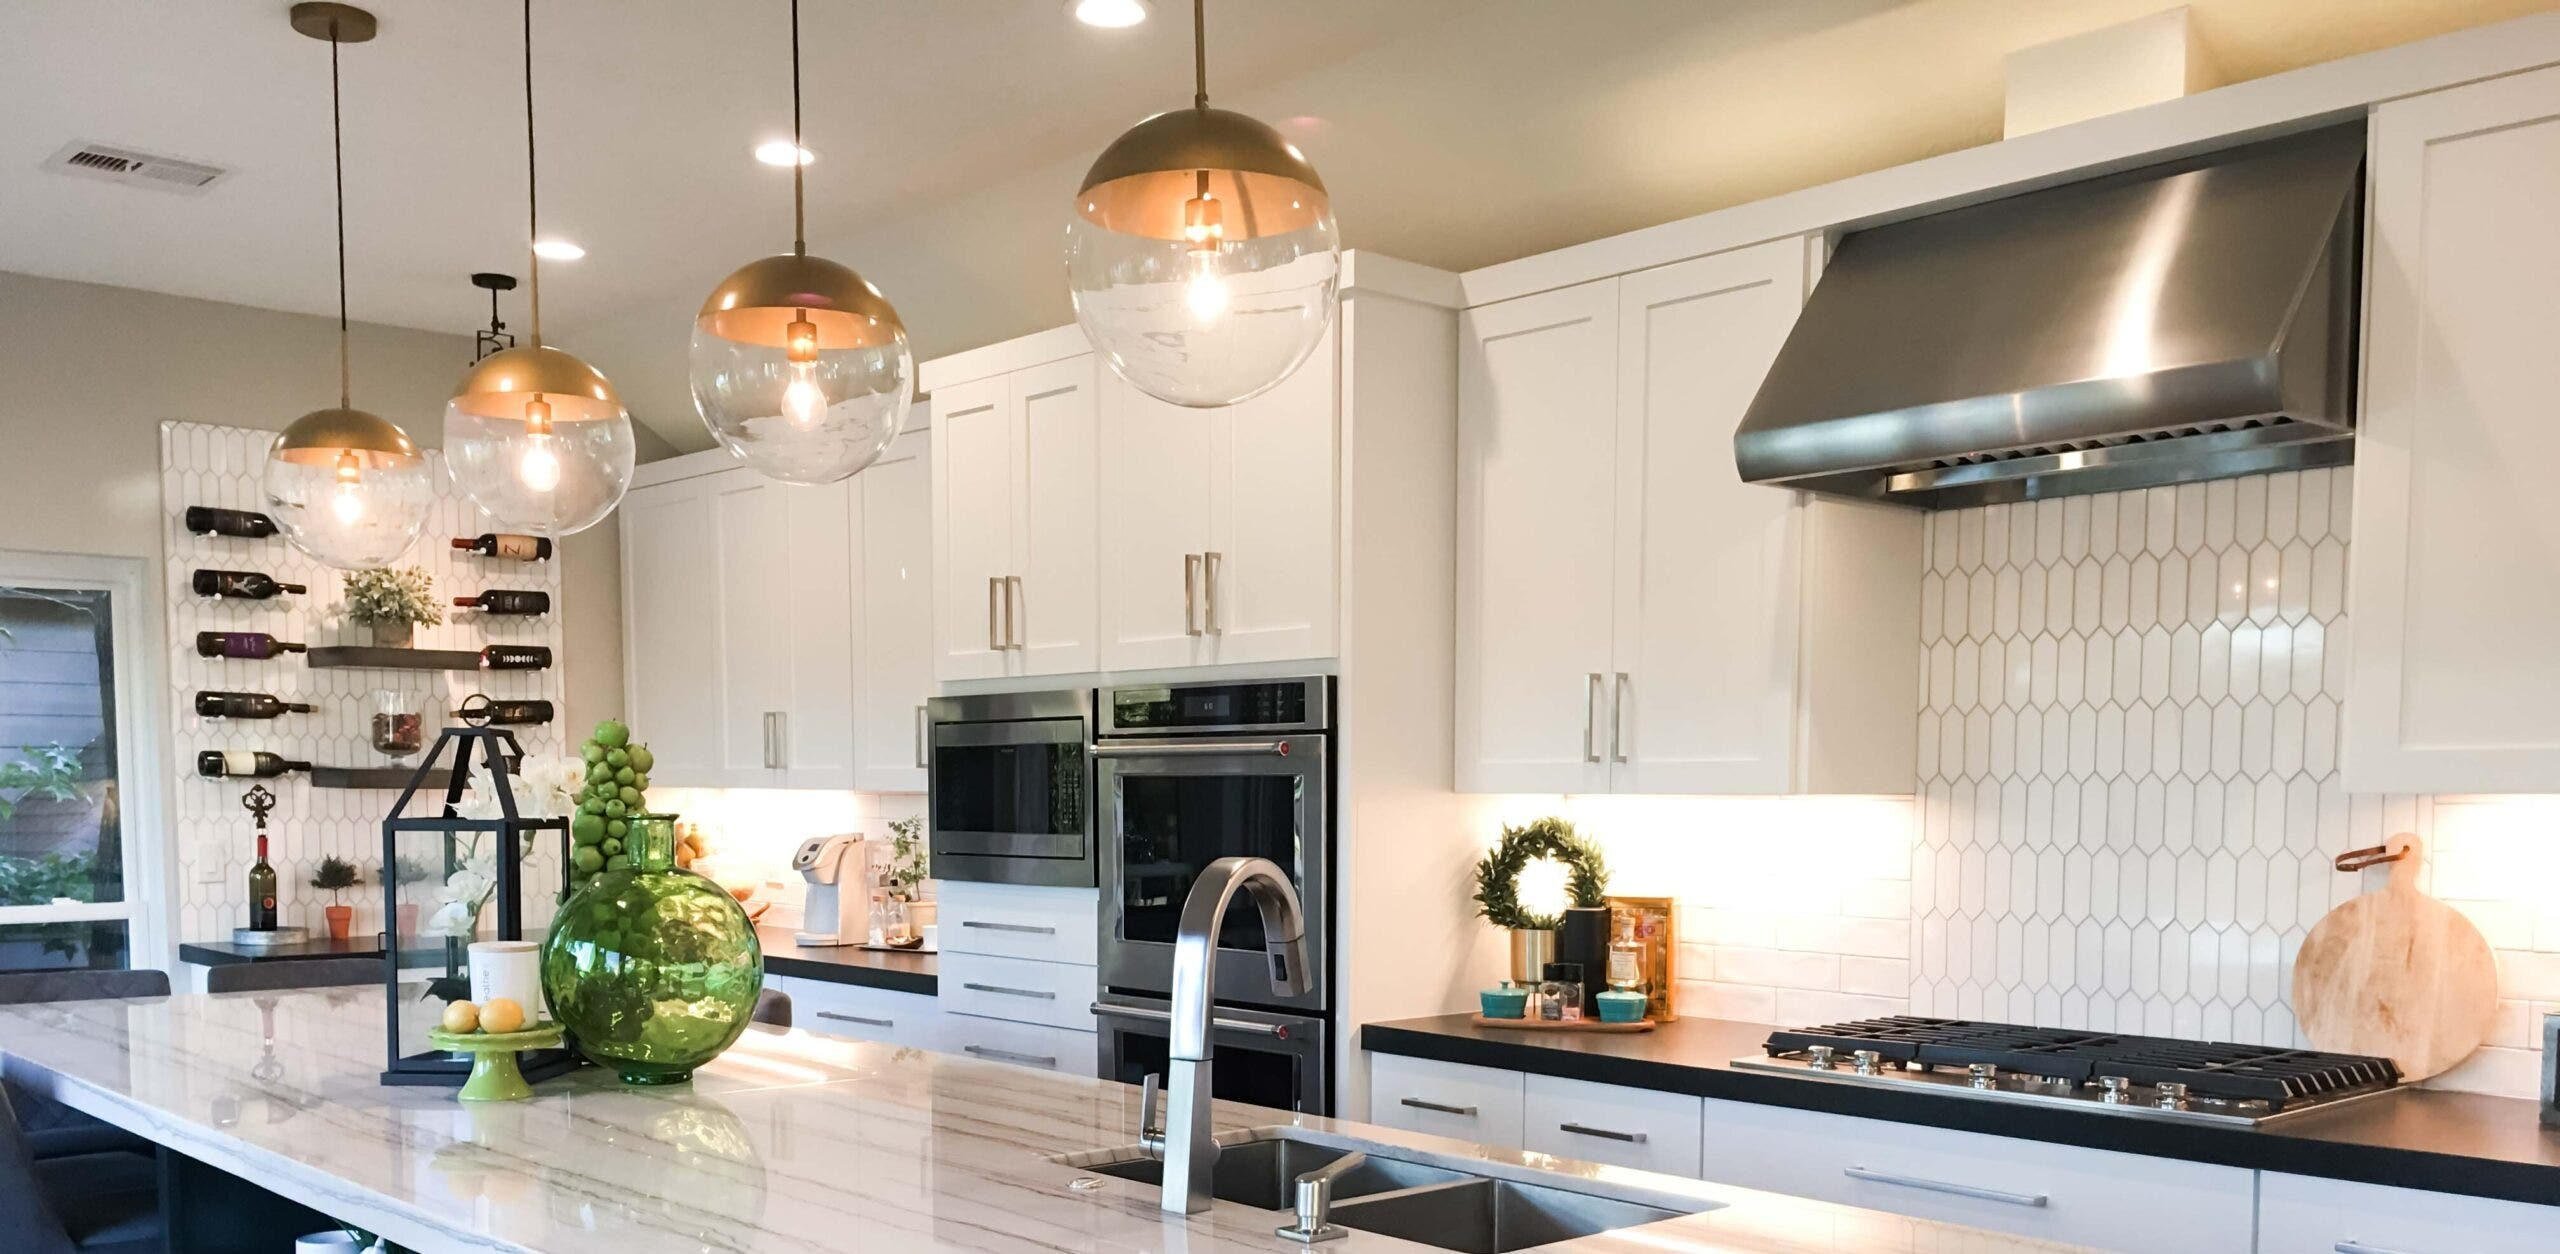 Why You Should Buy A Commercial Range Hood For Your Home